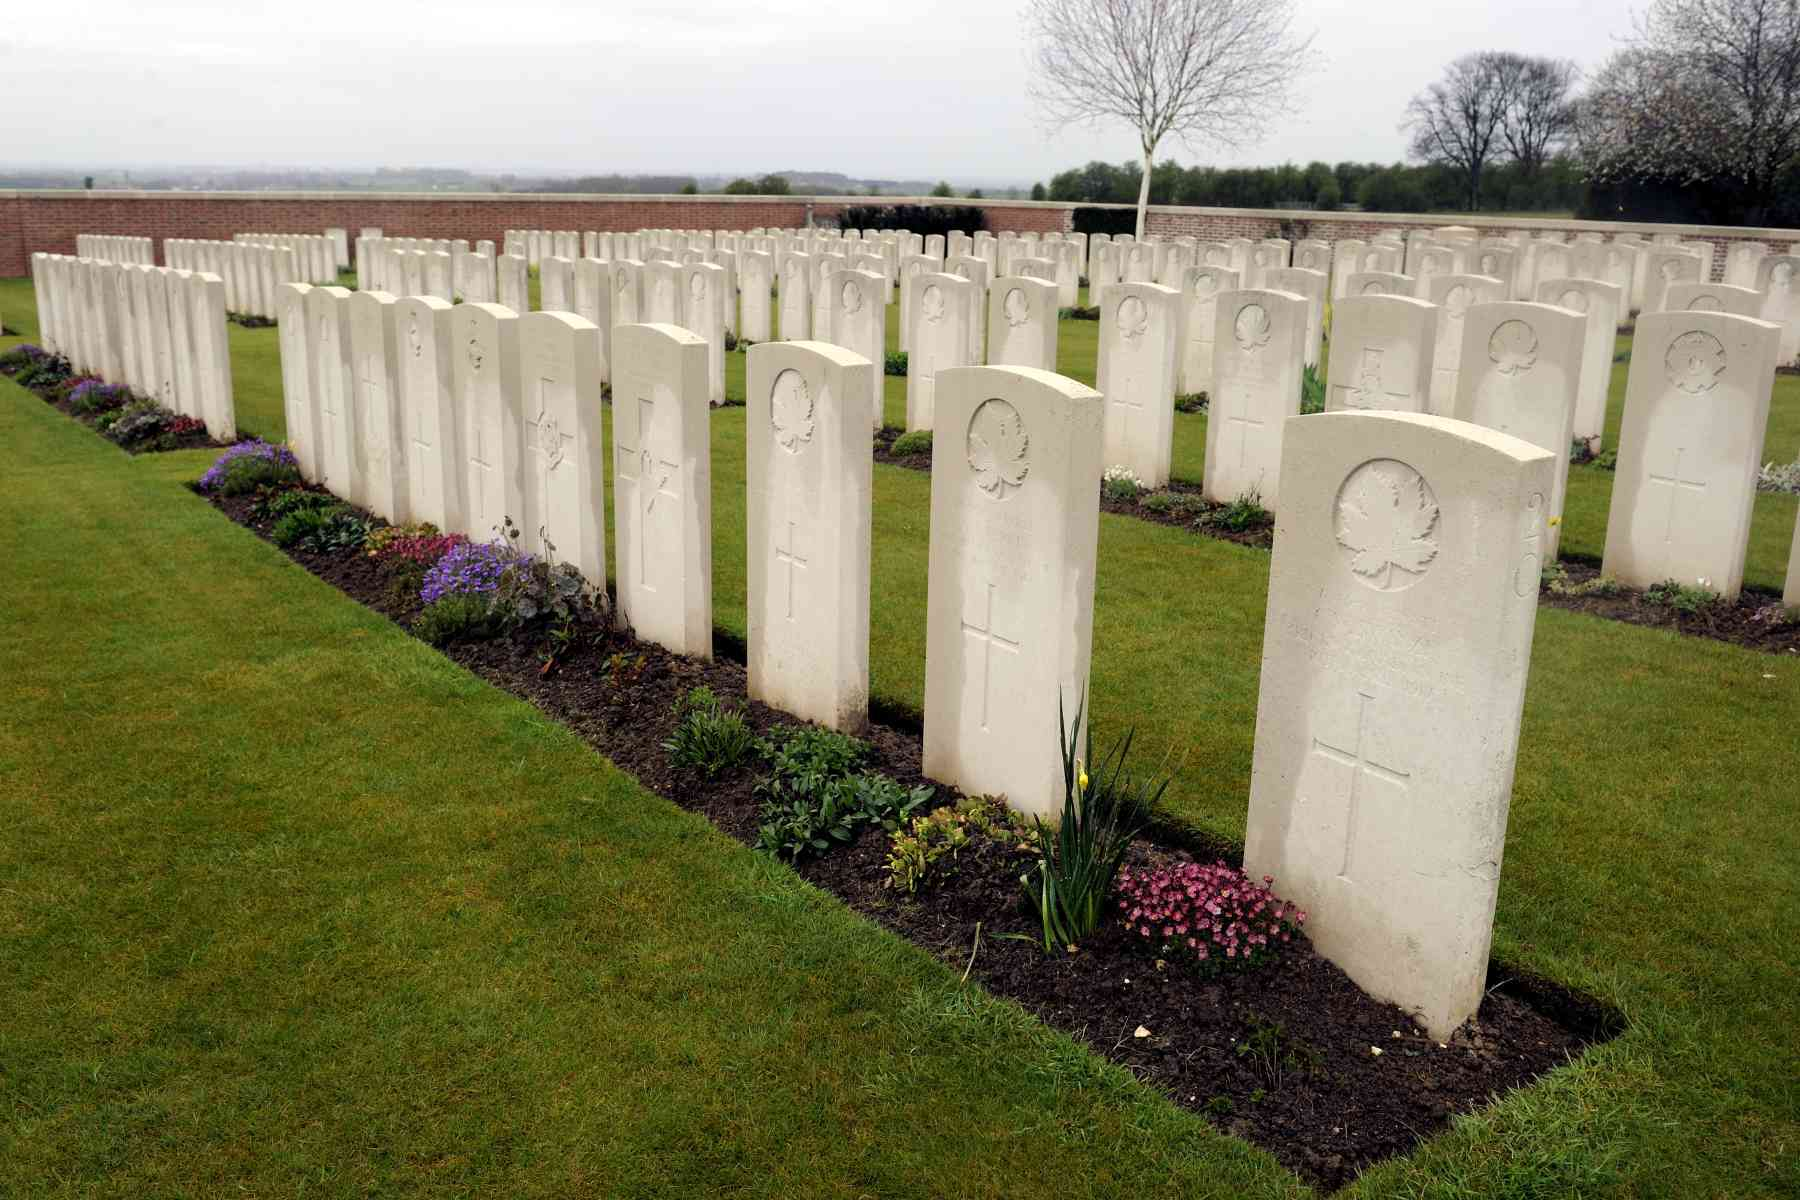 More than 200 Canadians are buried in the Bois-Carre British Cemetery.